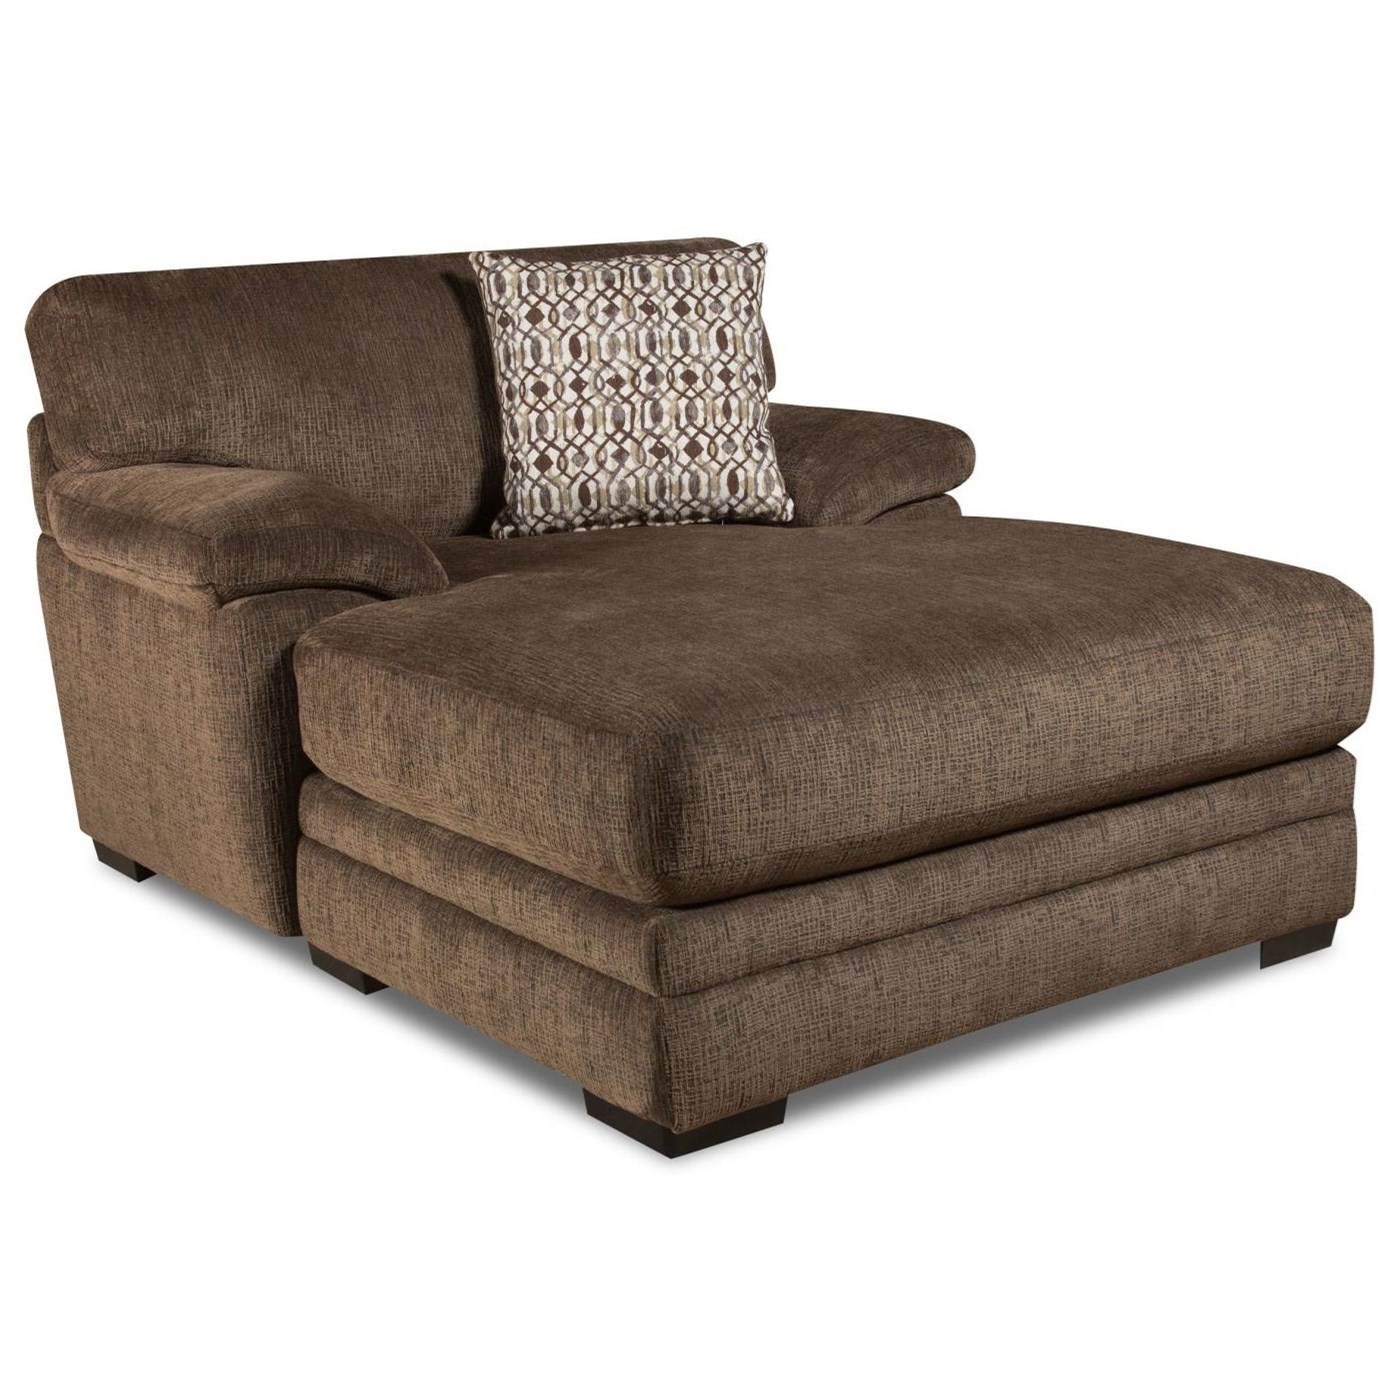 albany 8662 2 arm chaise a1 furniture